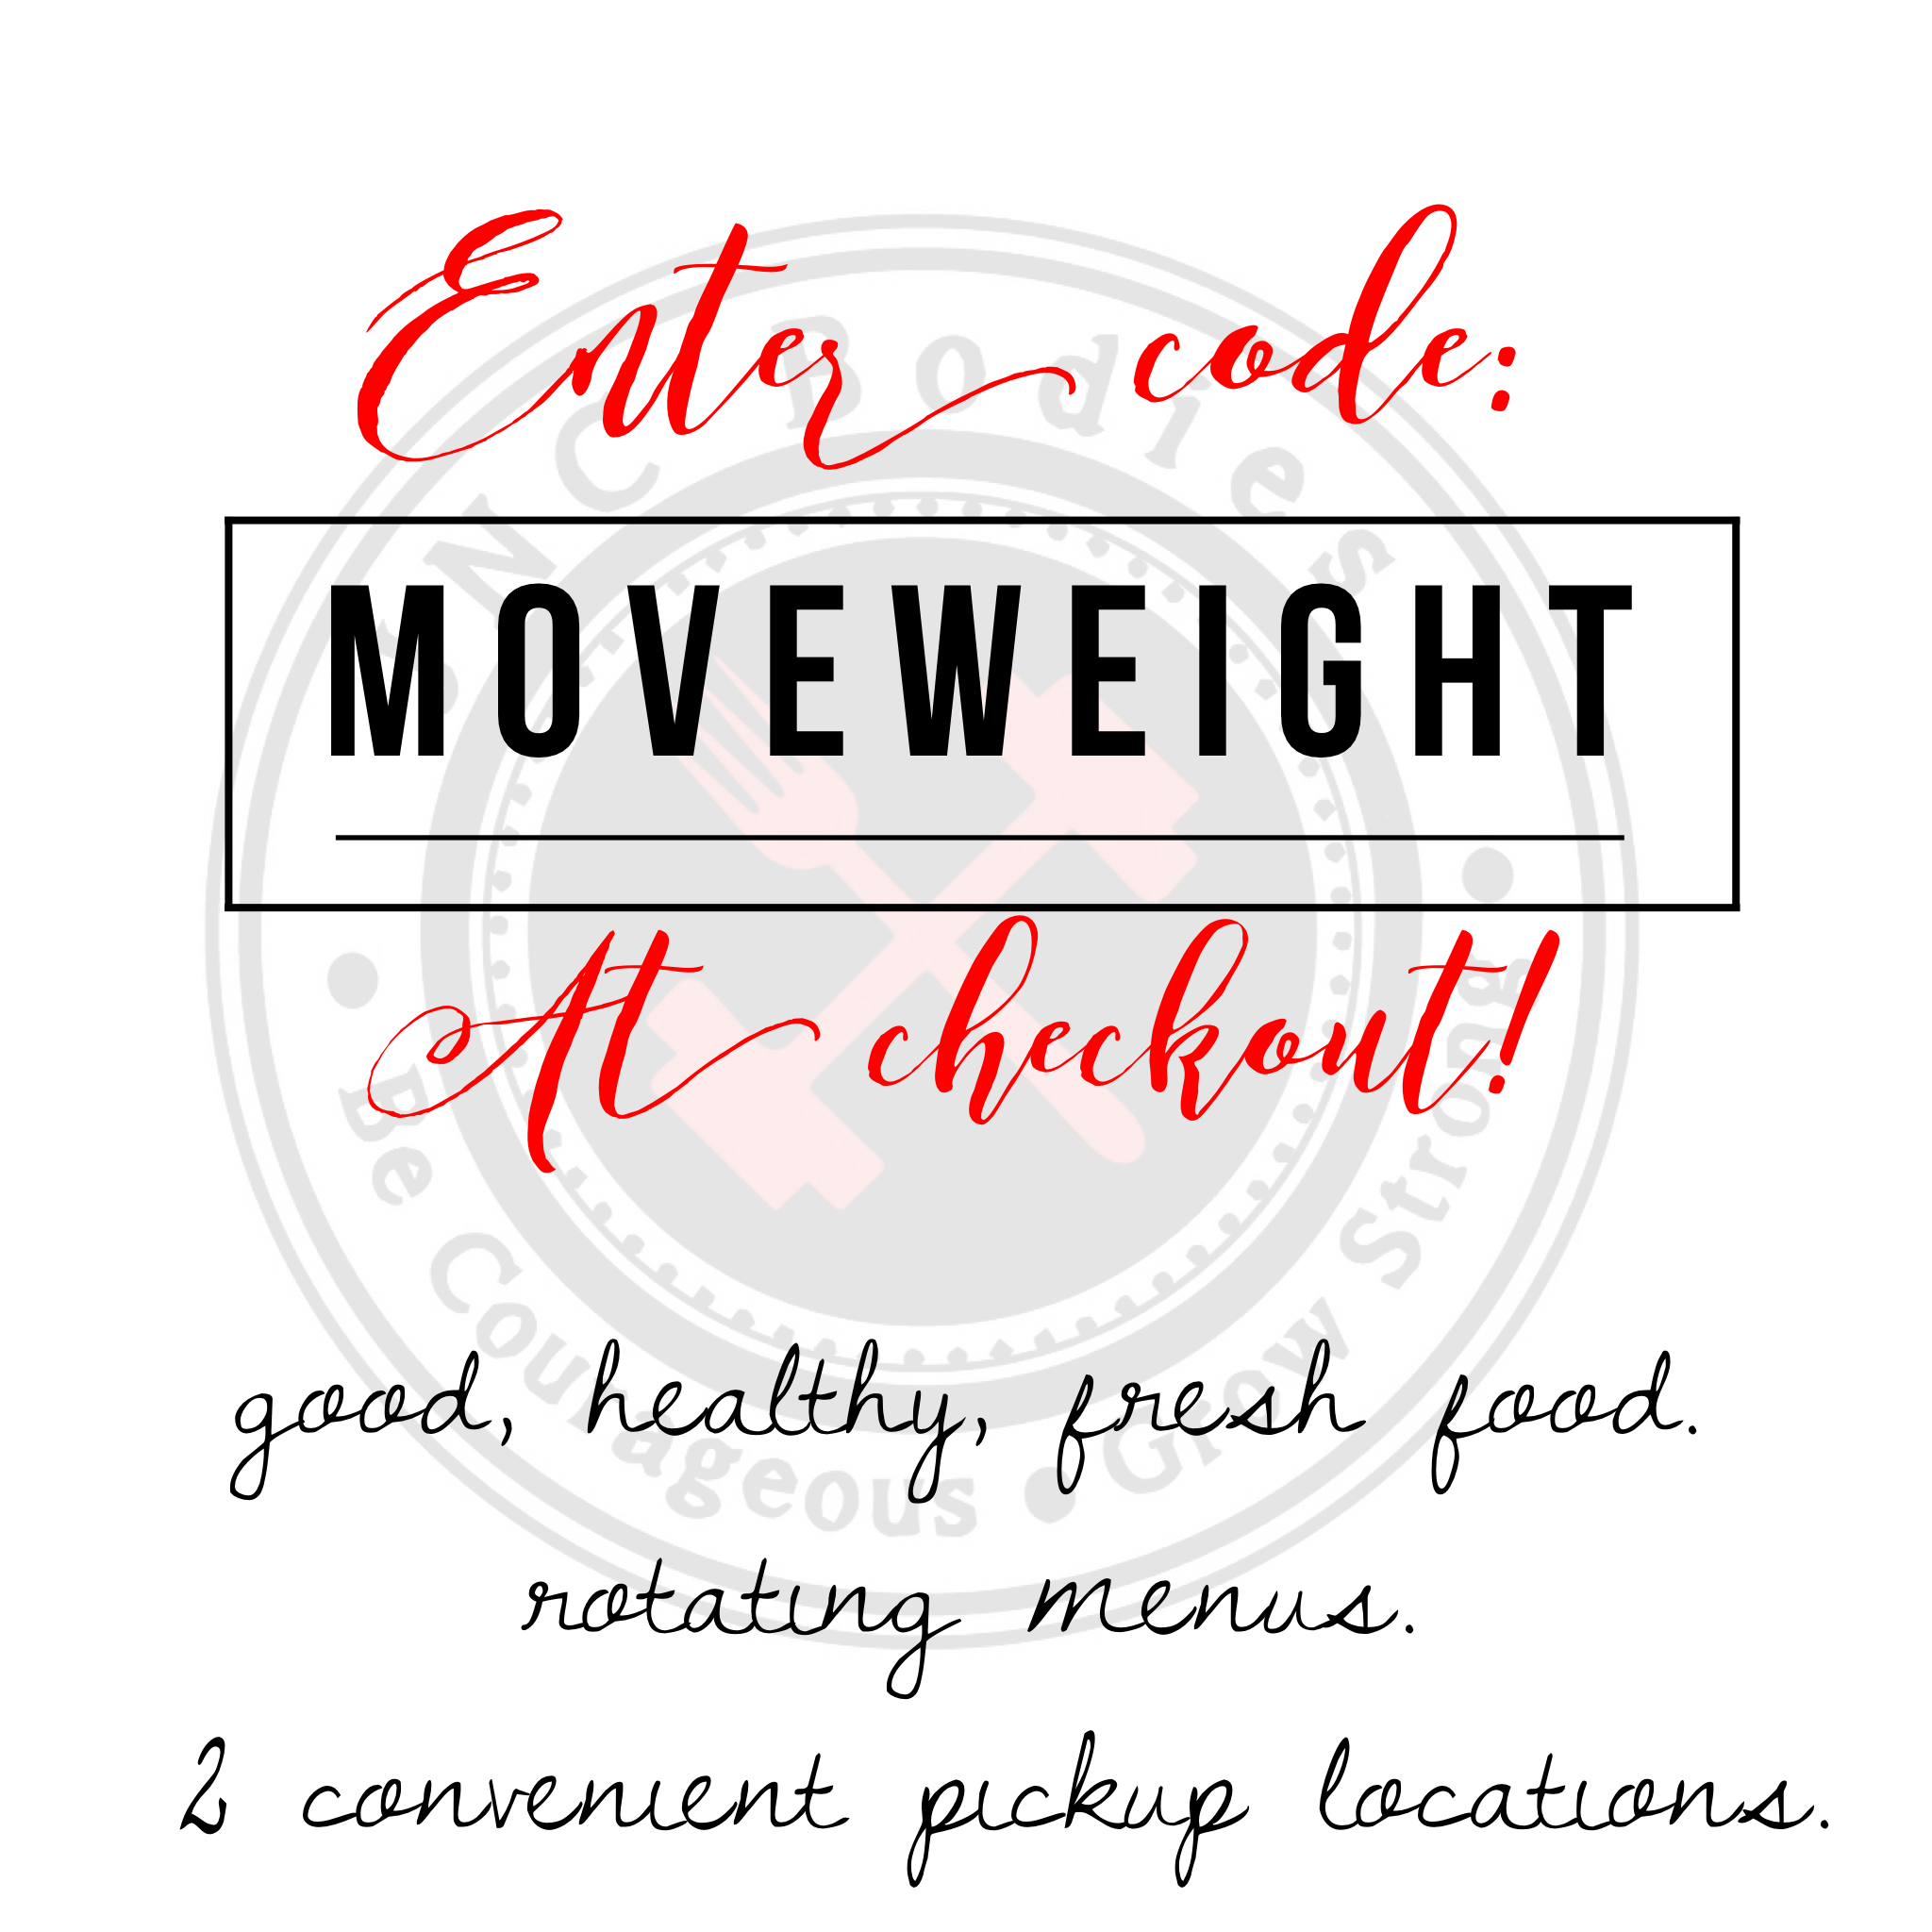 Enter: MOVEWEIGHT at Checkout!